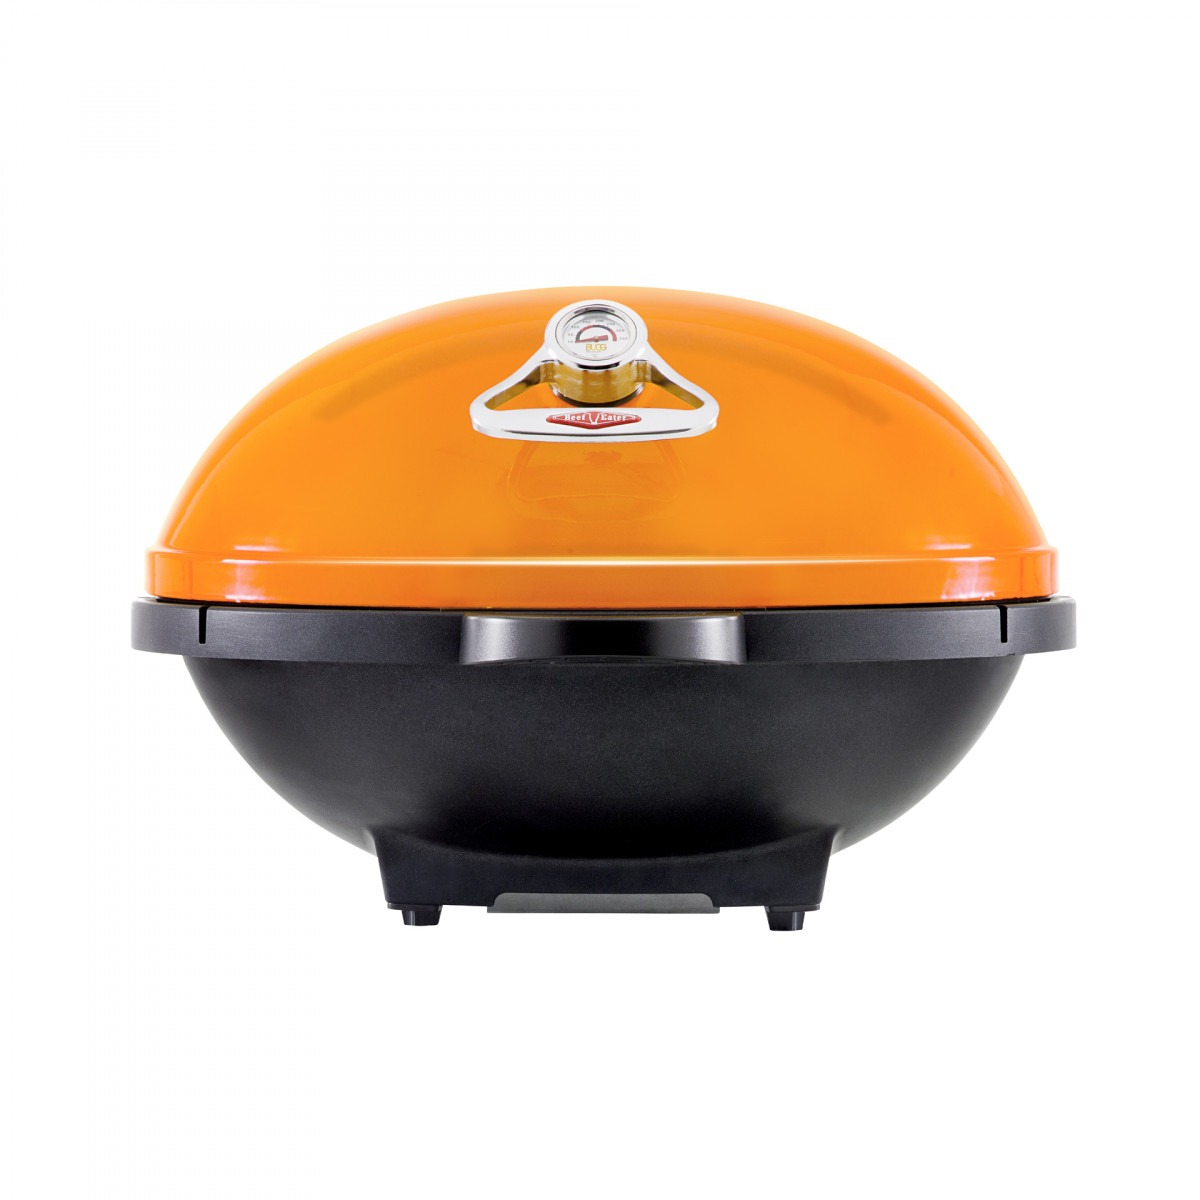 Picture of: Beefeater Bugg Gasgrill Orange Gasgrill Dk